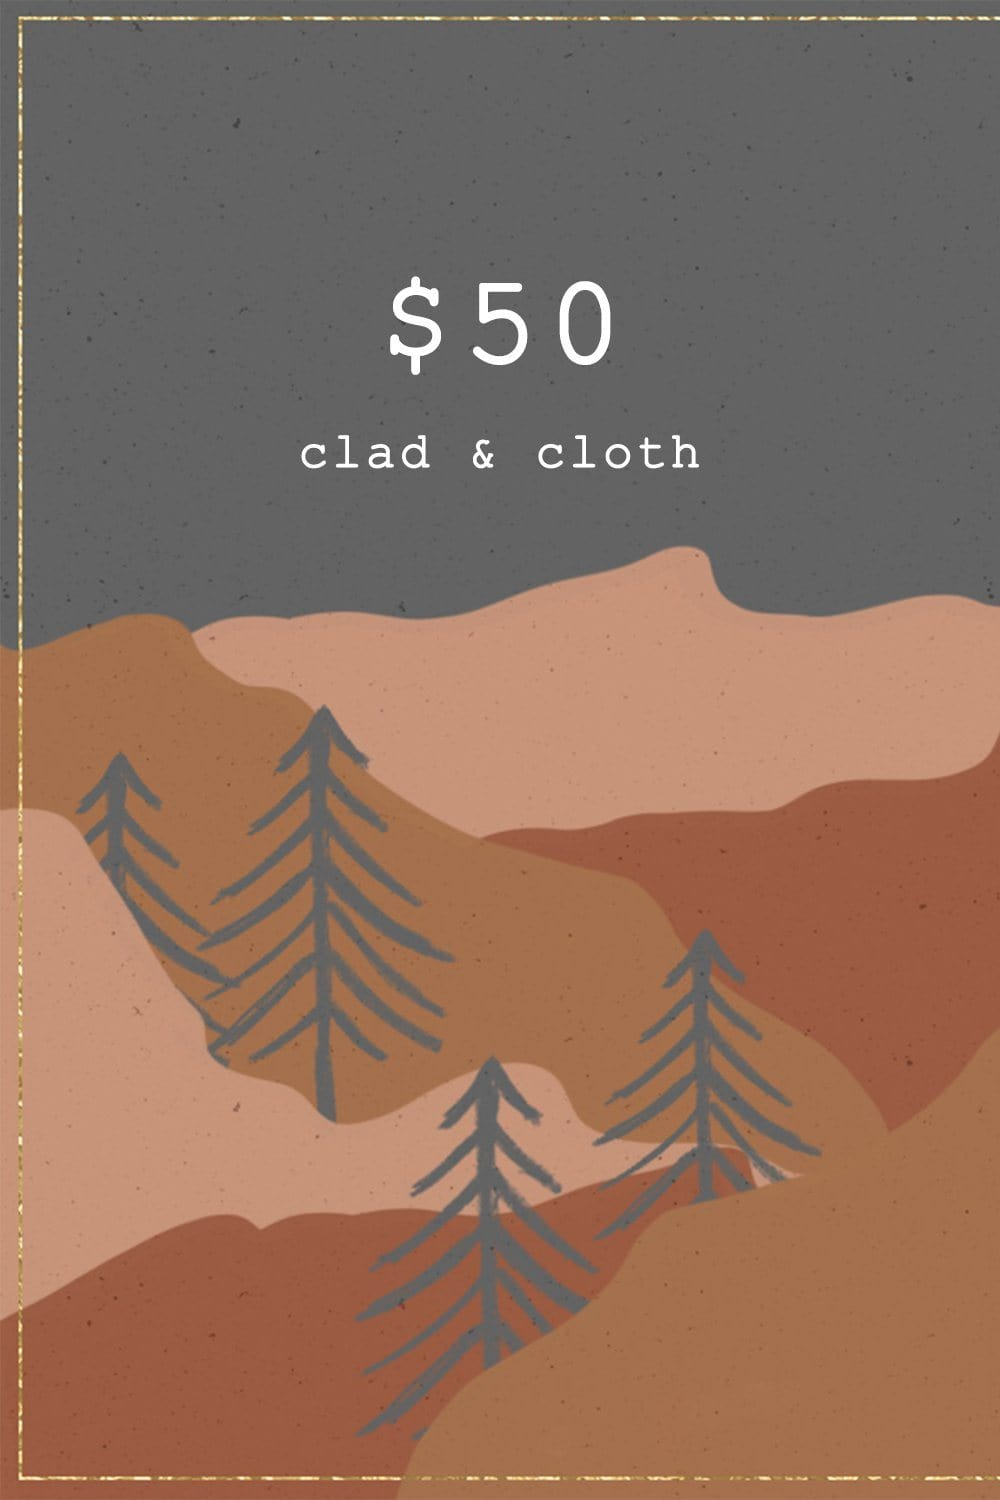 Clad and Cloth, CLAD & CLOTH Gift Card - $50, Clad & Cloth, Gift Card.